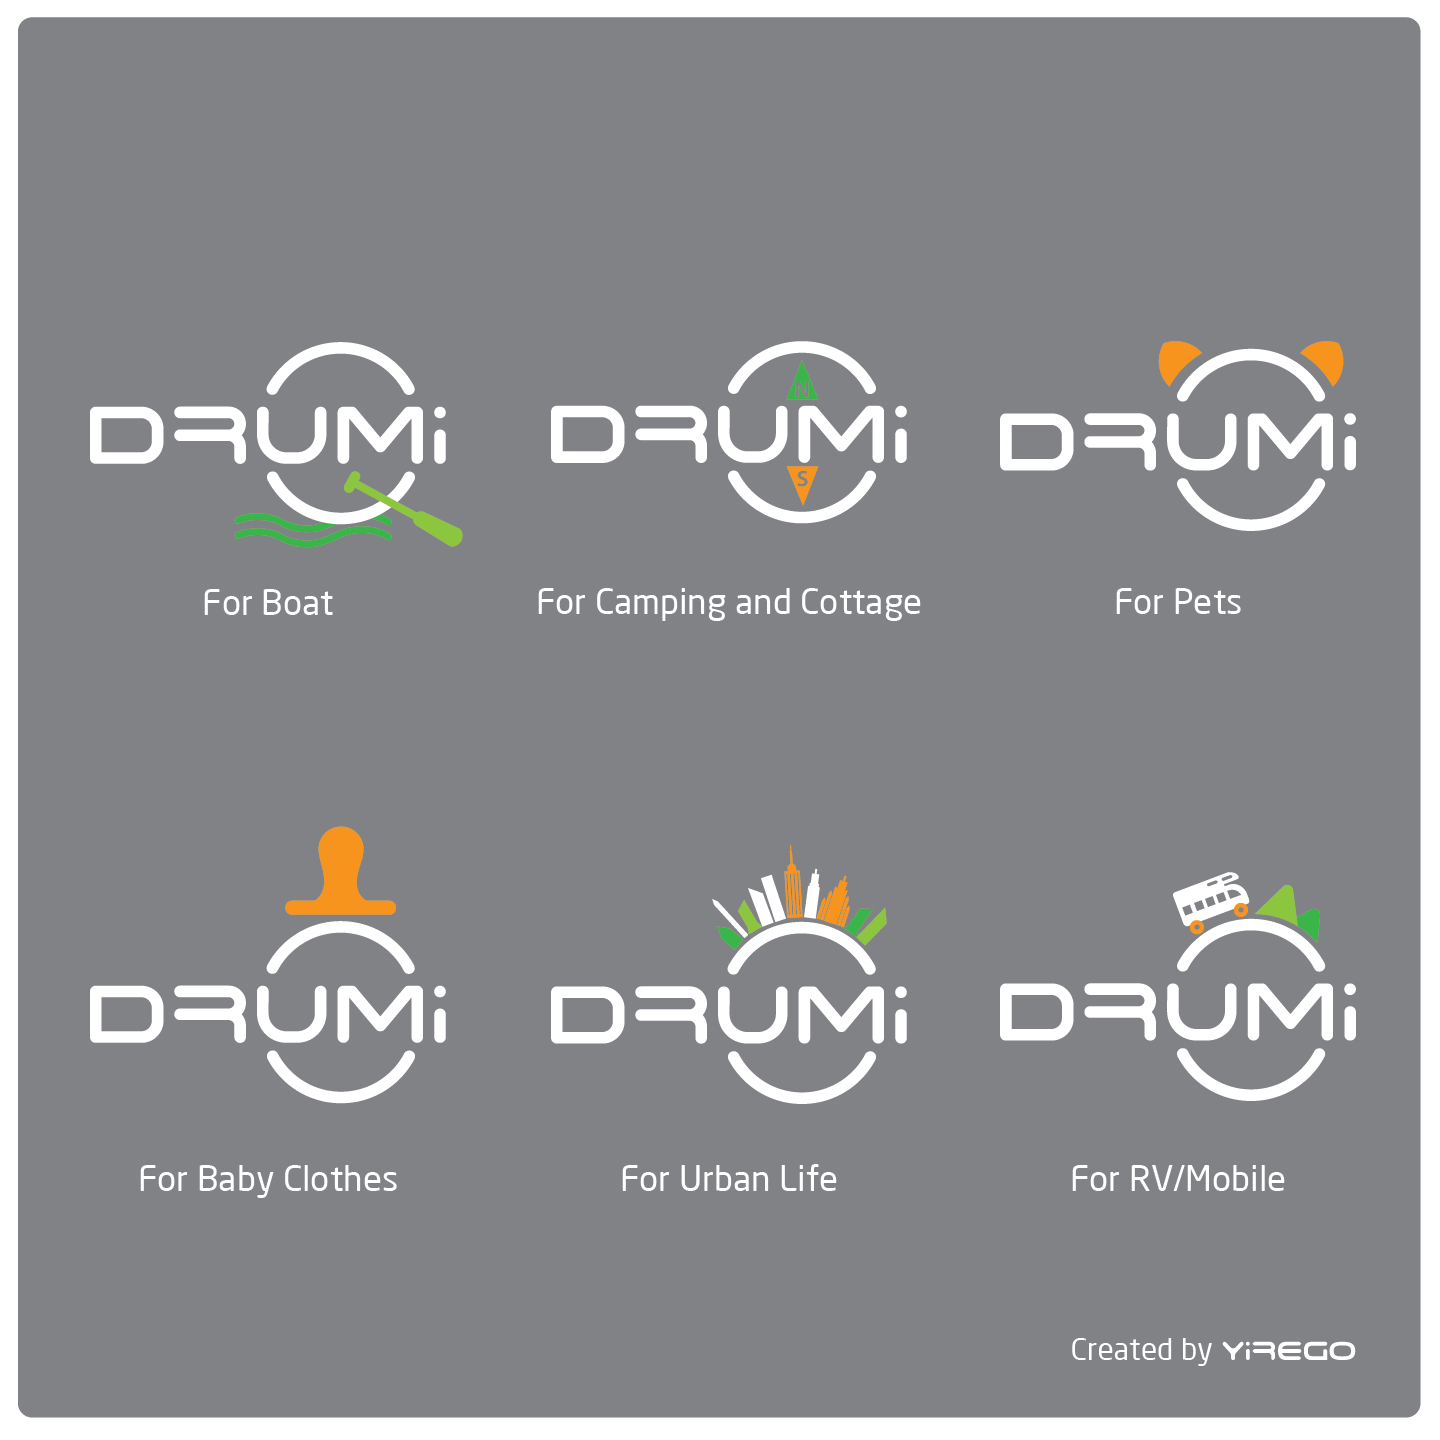 Check out Drumi's new logo - perfect for everyone!